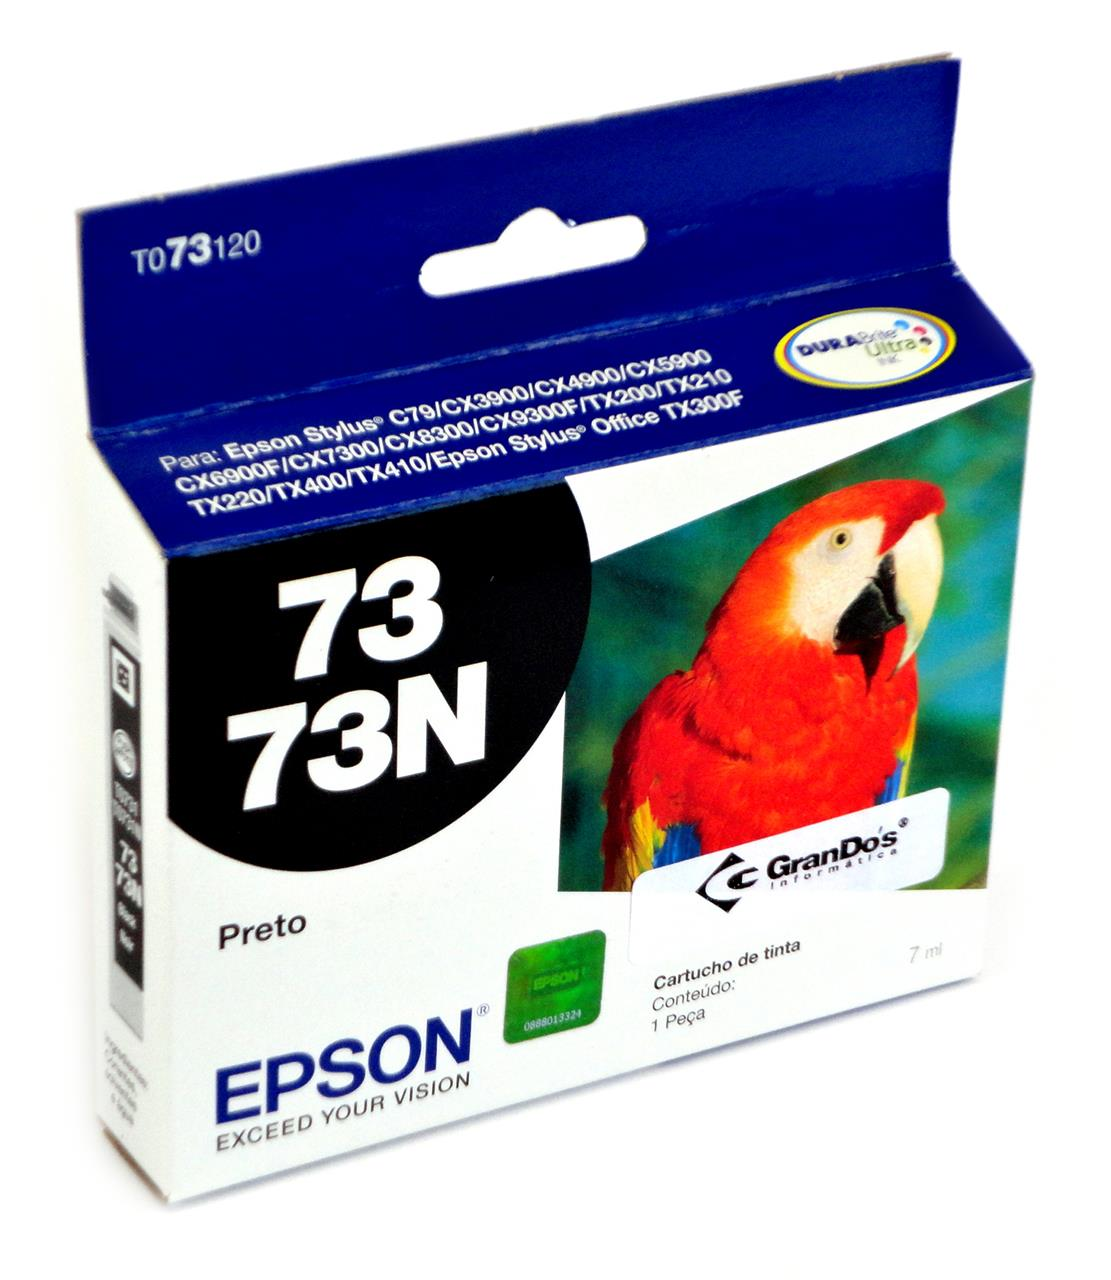 Cartucho Original Epson 73N Preto TO73120